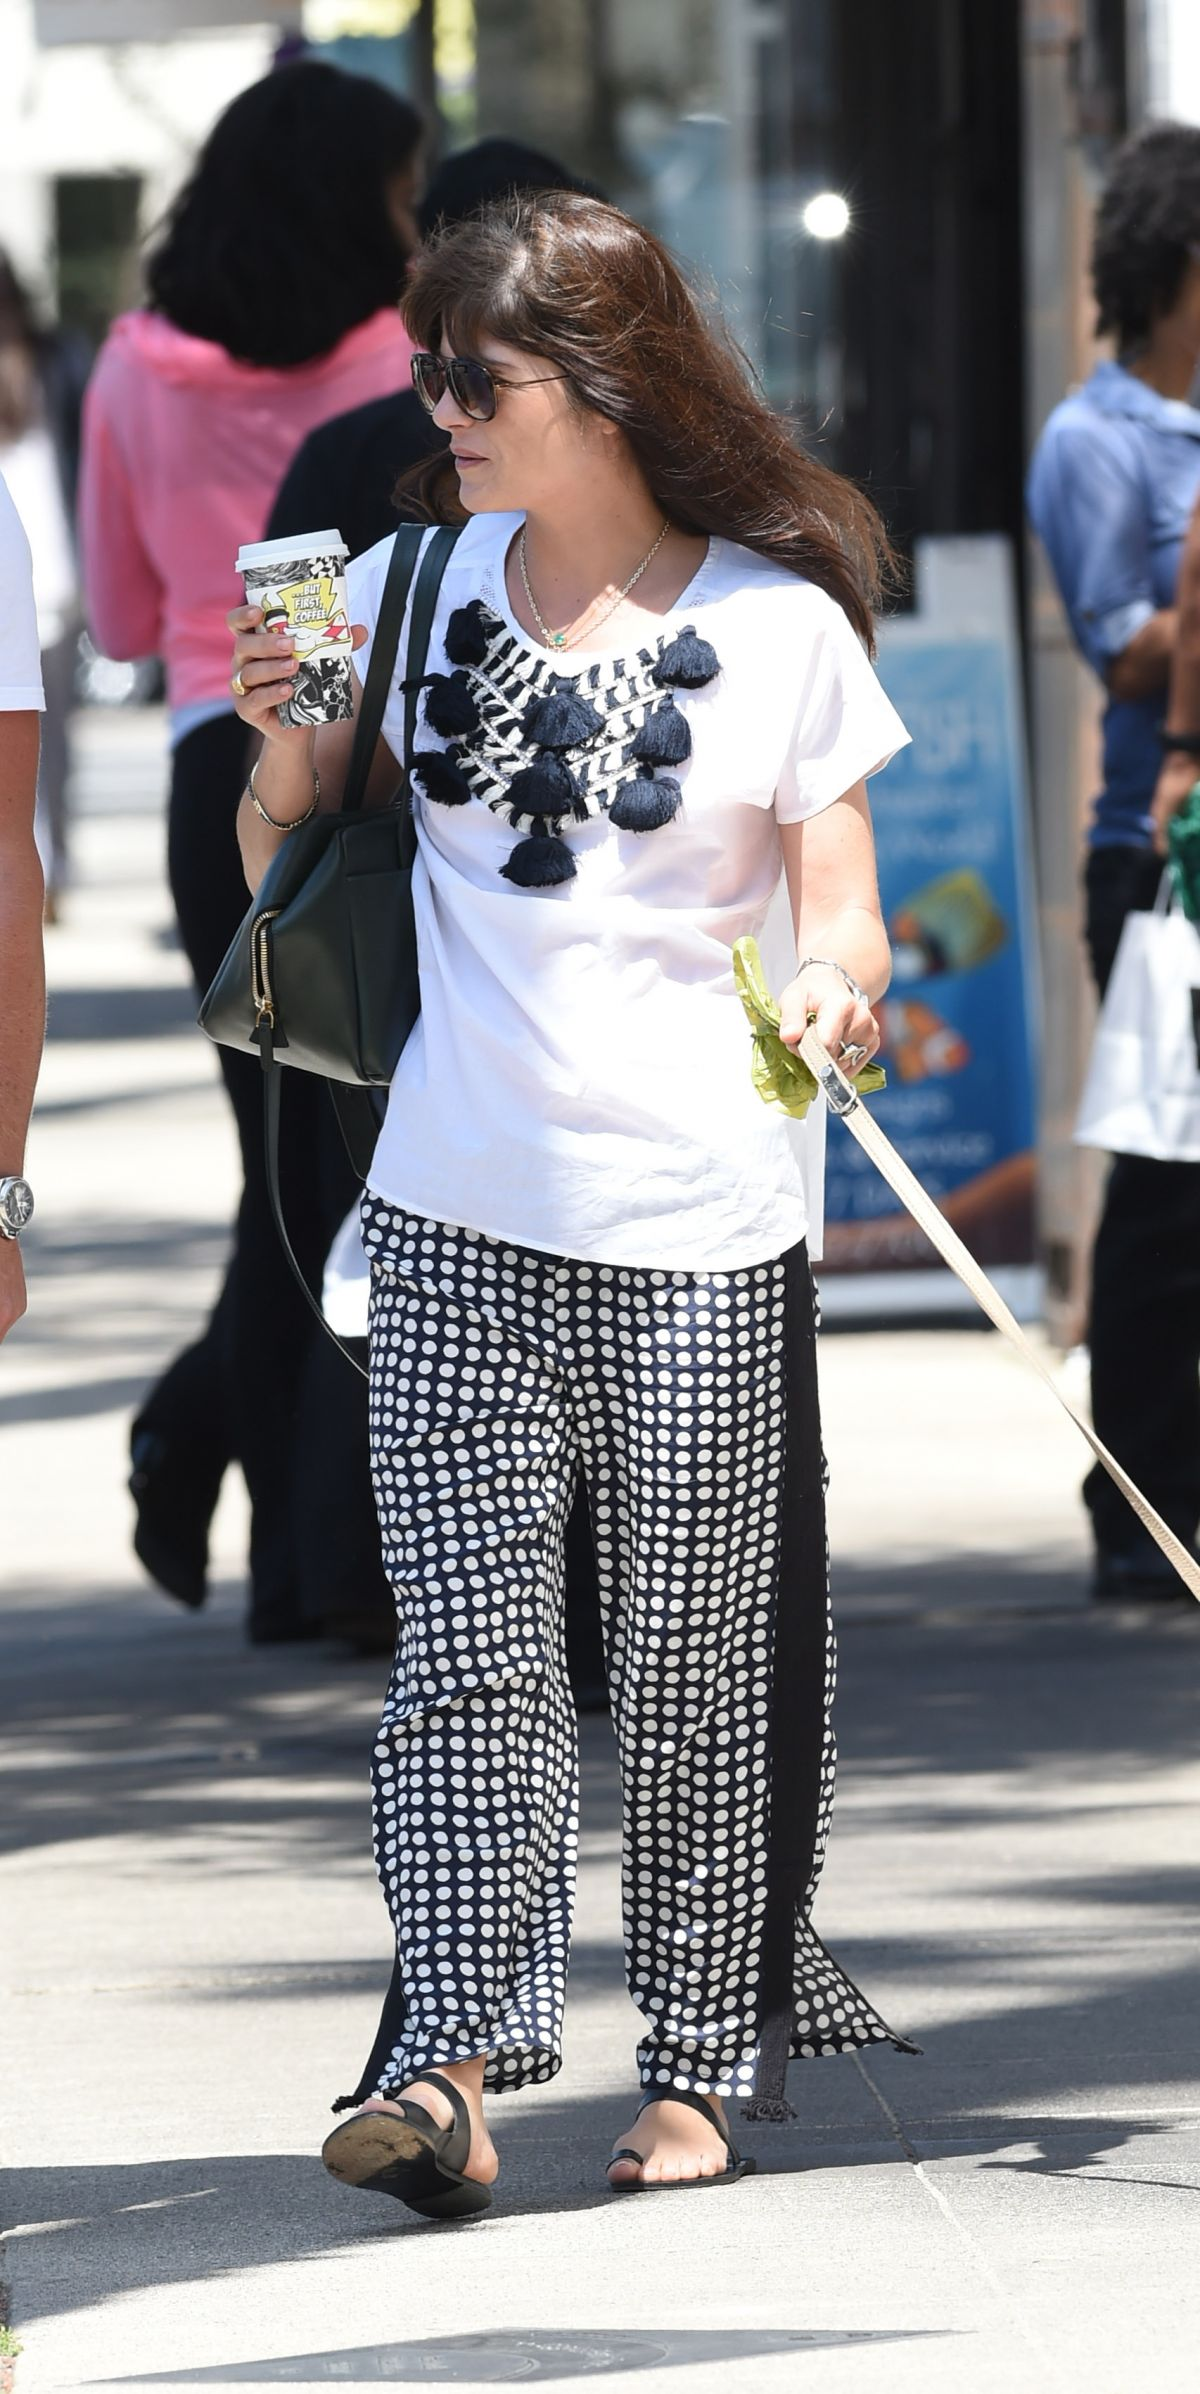 Selma Blair Out with her dog in LA   selma-blair-out-with-her-dog-in-la-_1